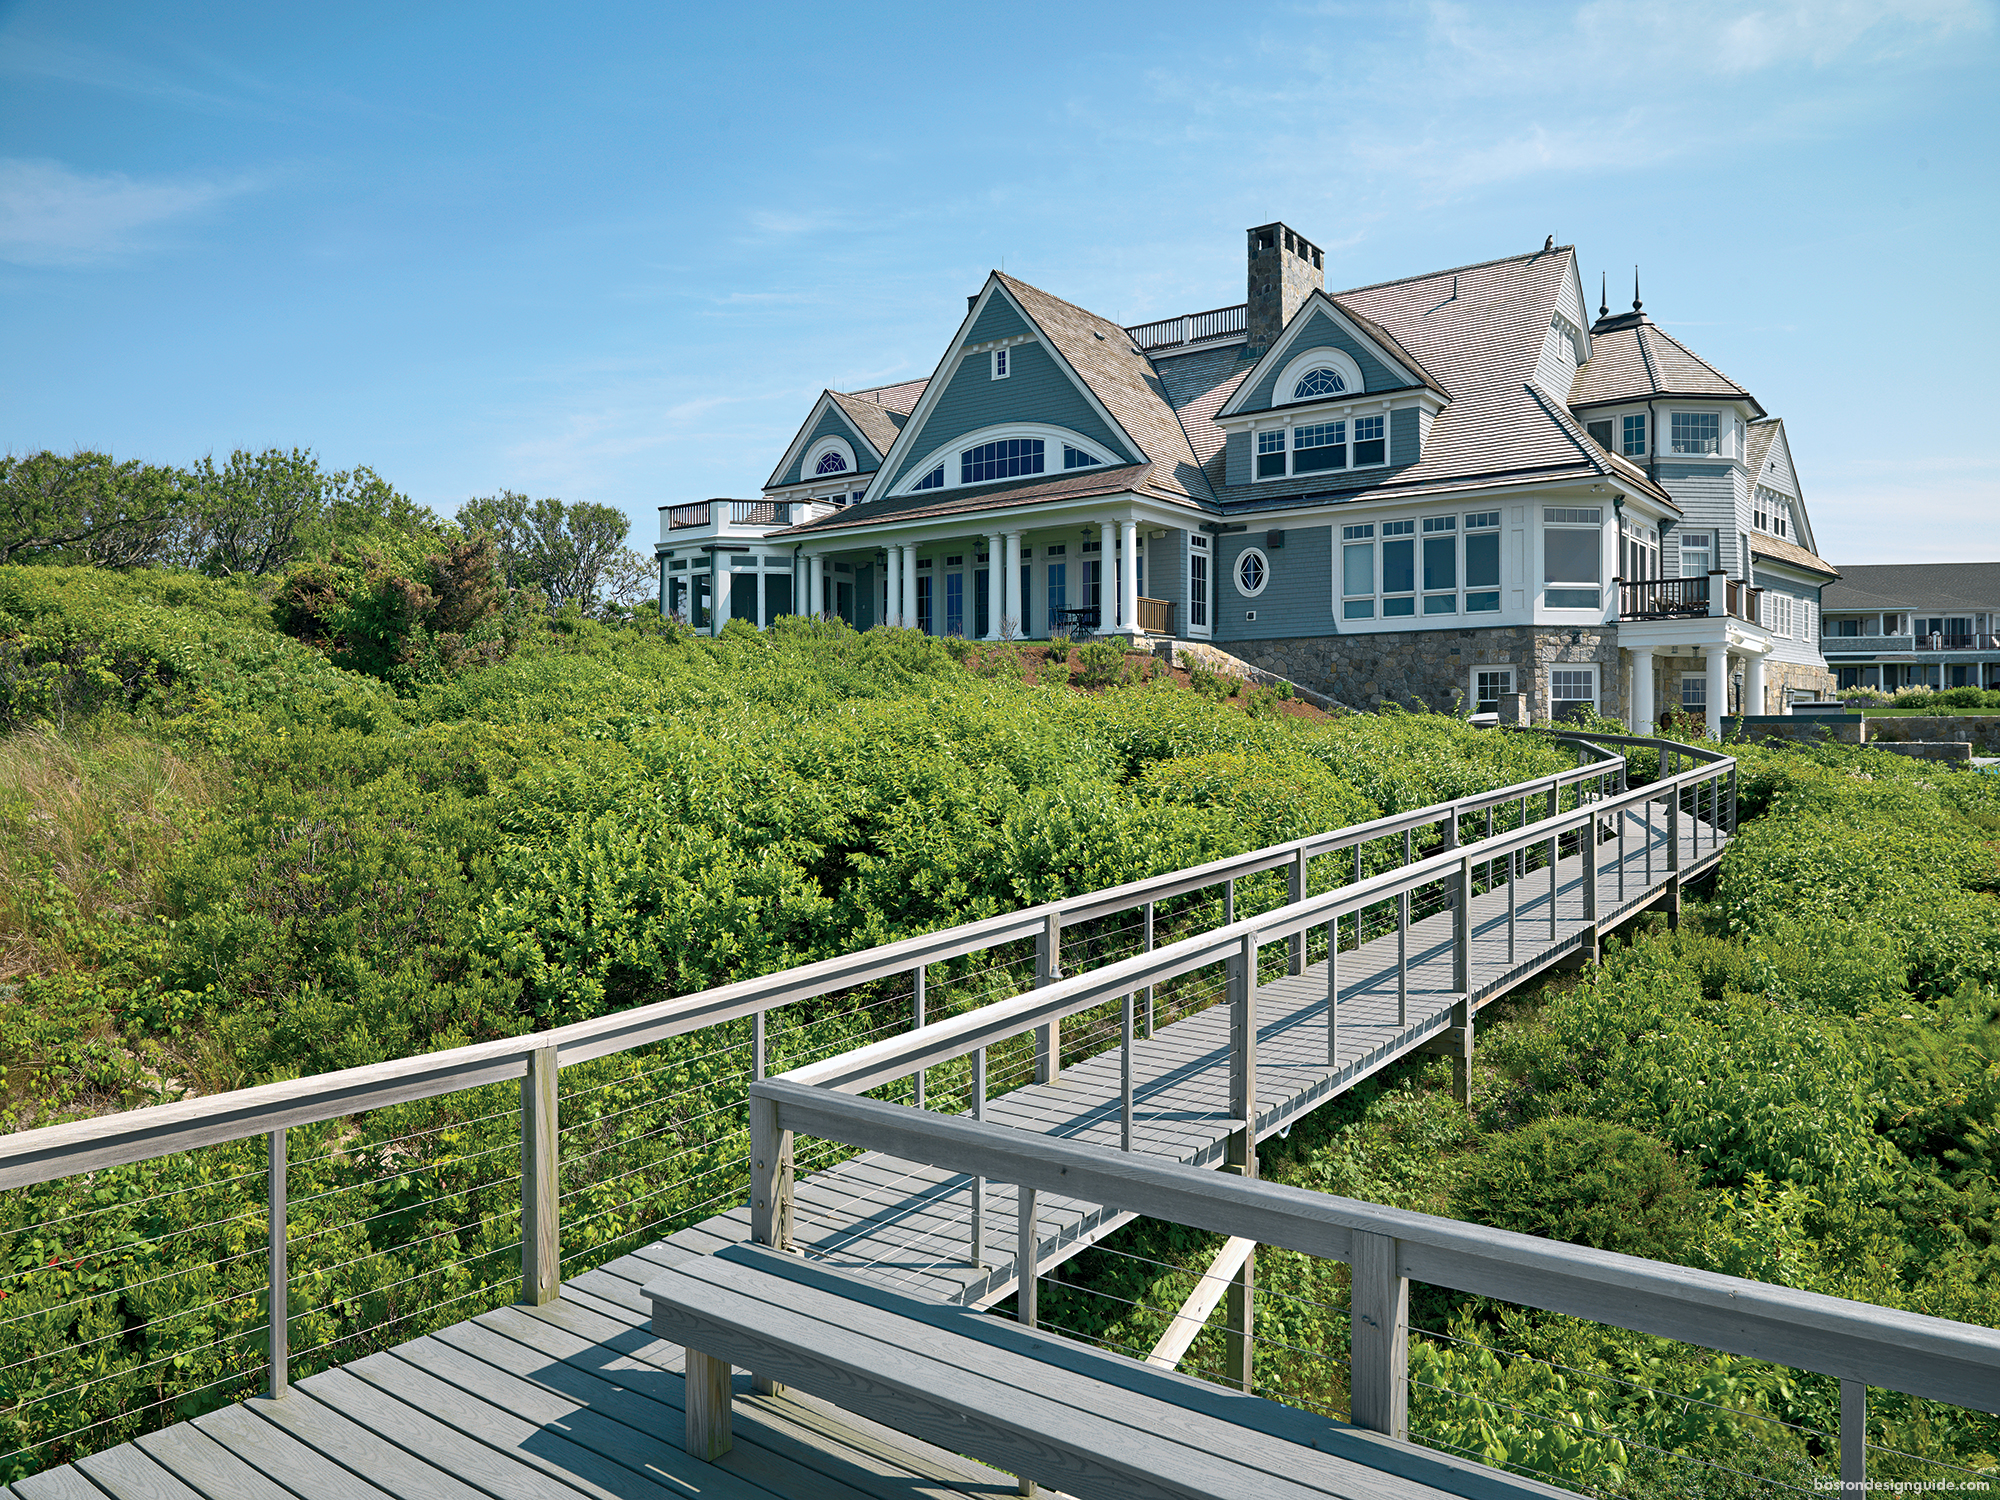 waterfront homes New England coast